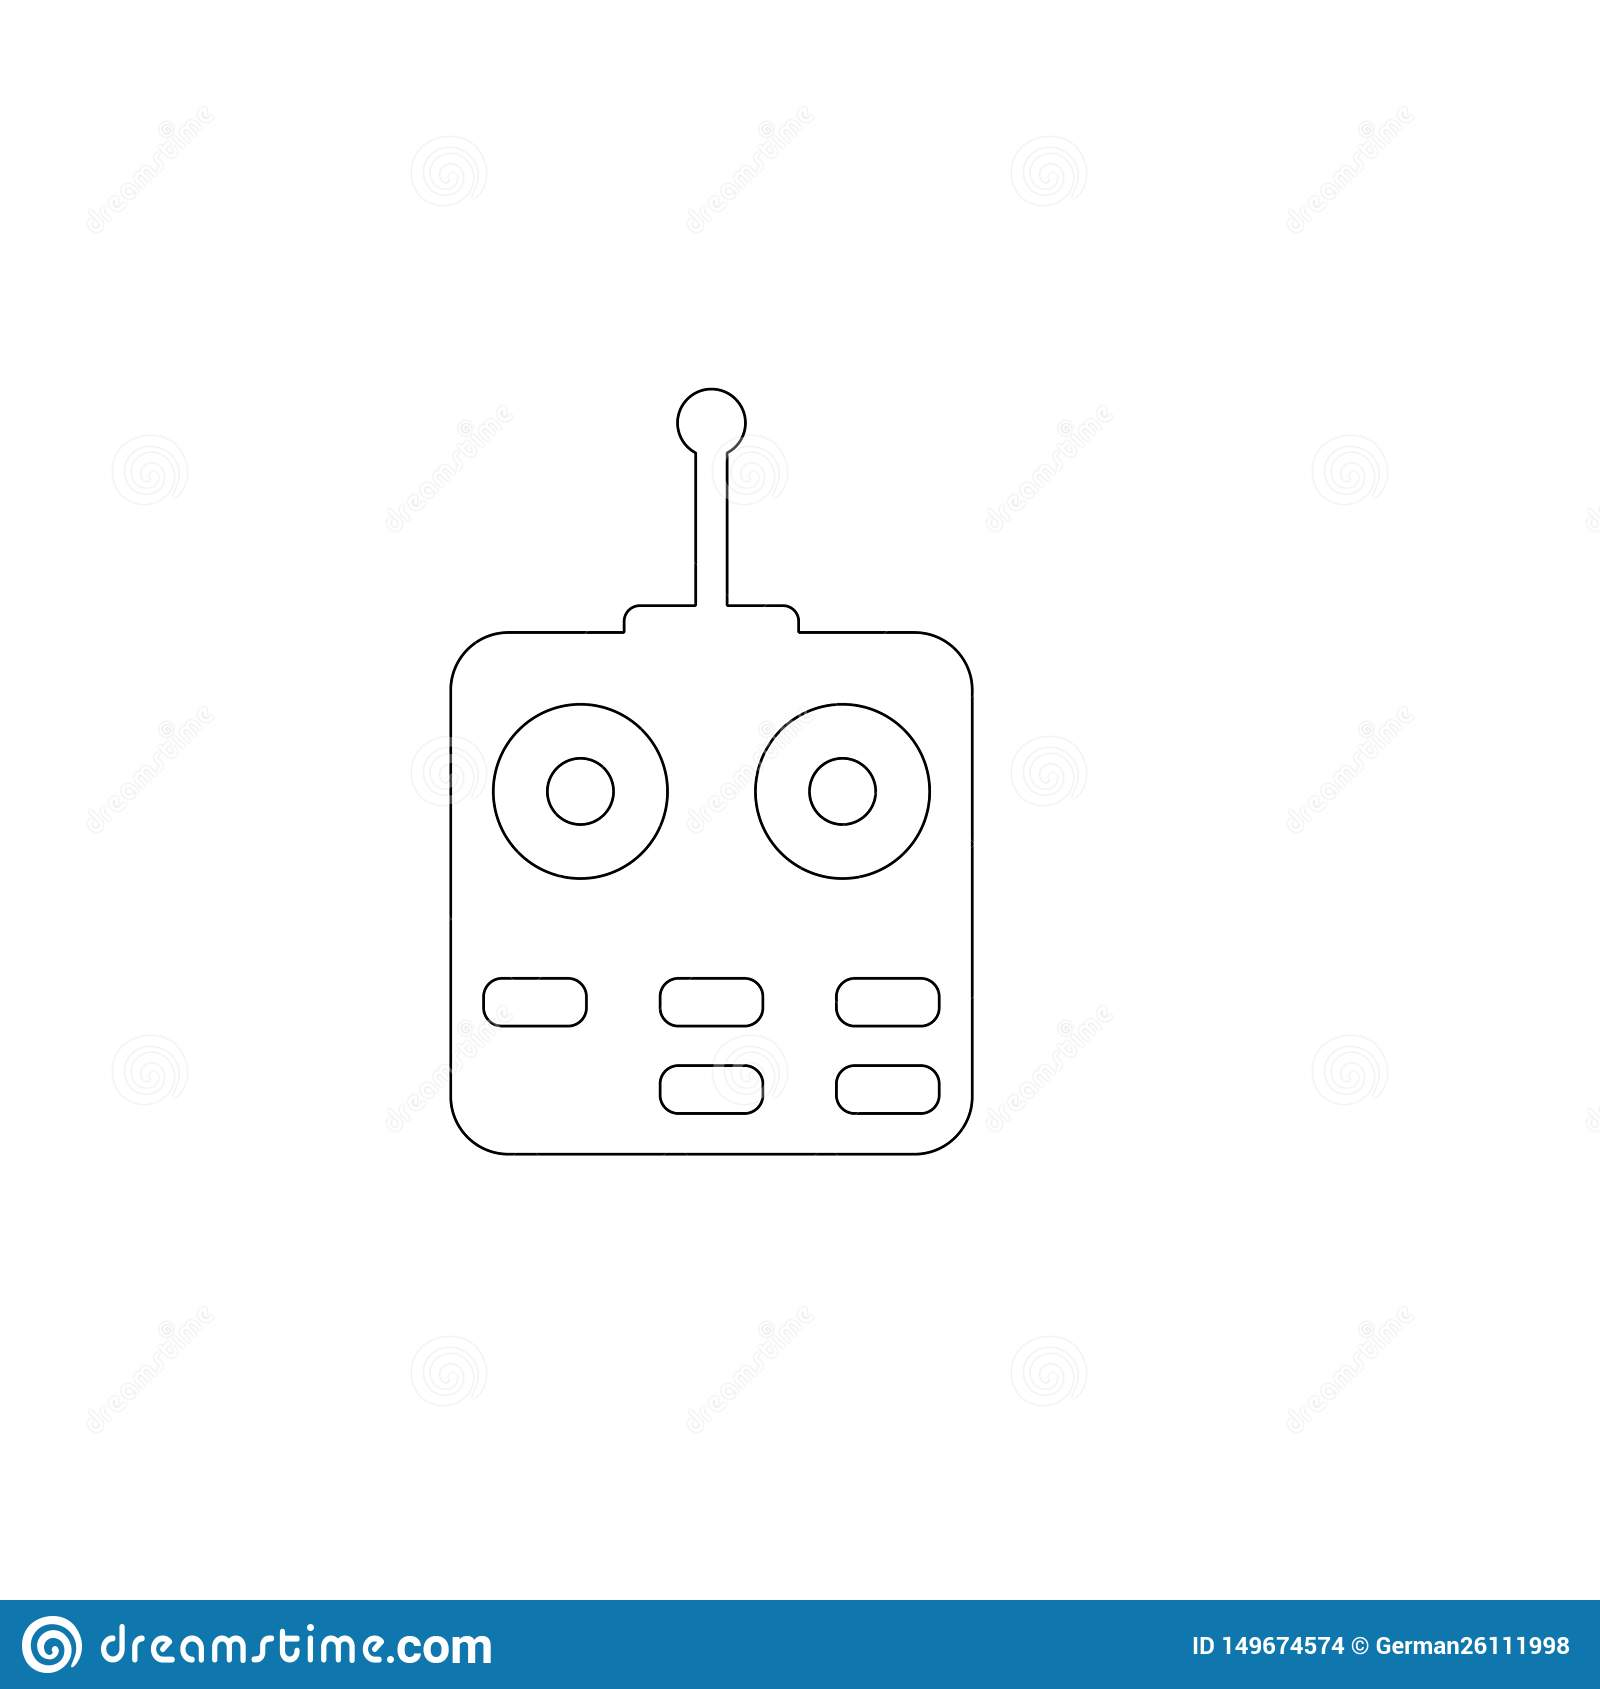 Remote controlled. flat vector icon